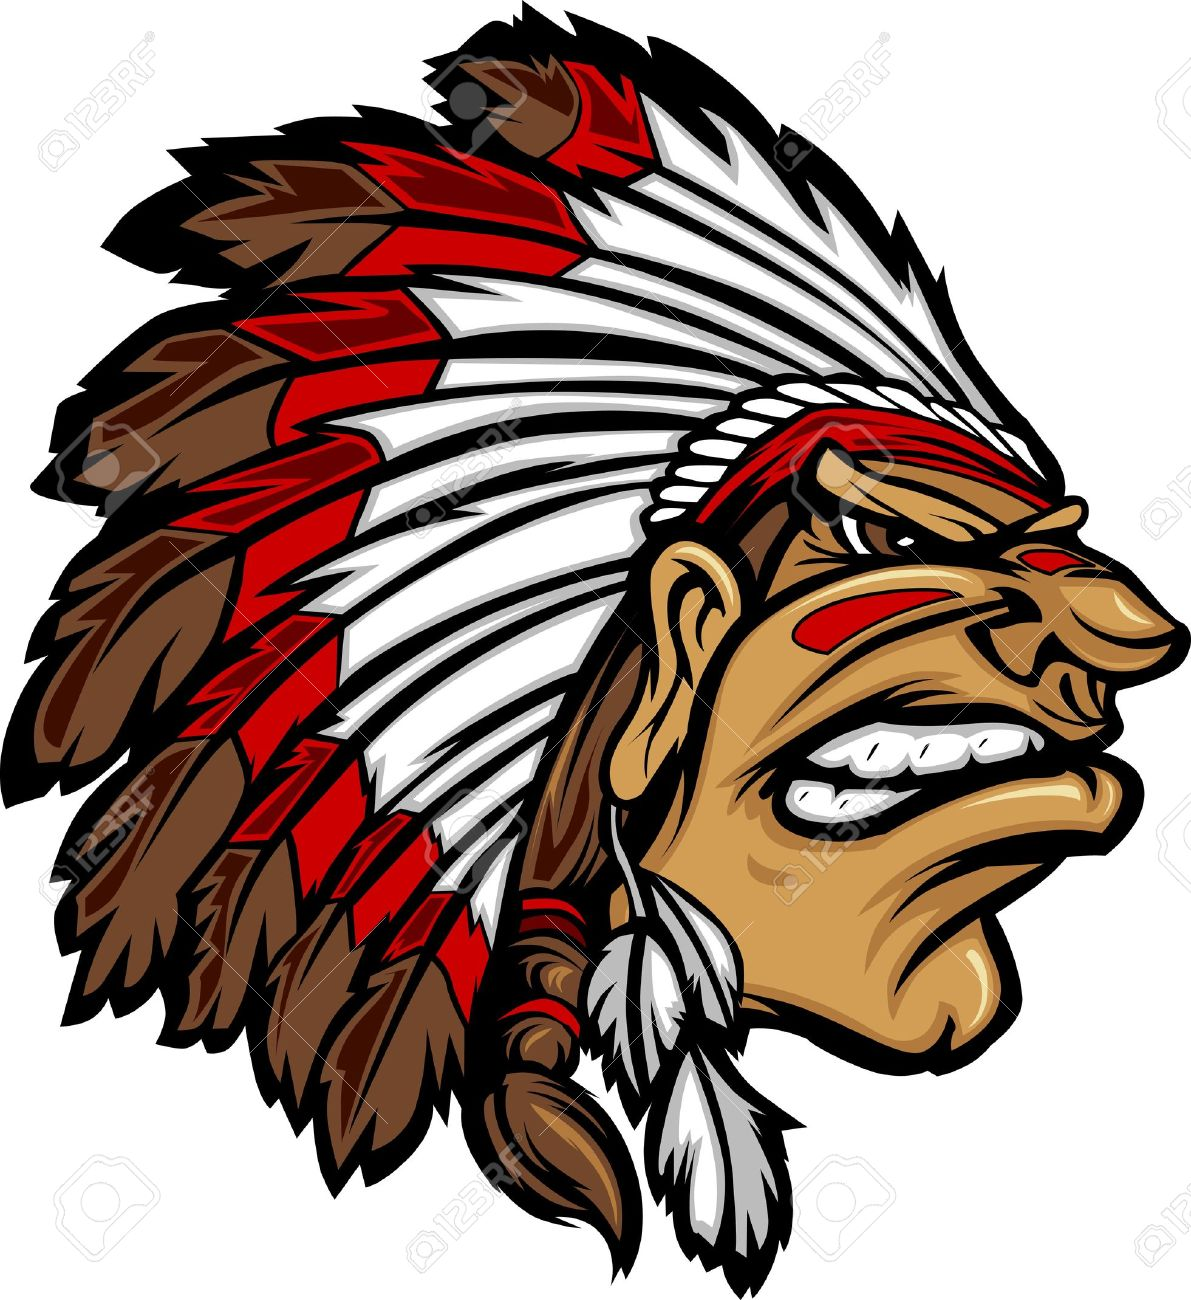 hight resolution of indian chief mascot head cartoon graphic stock vector 10641741